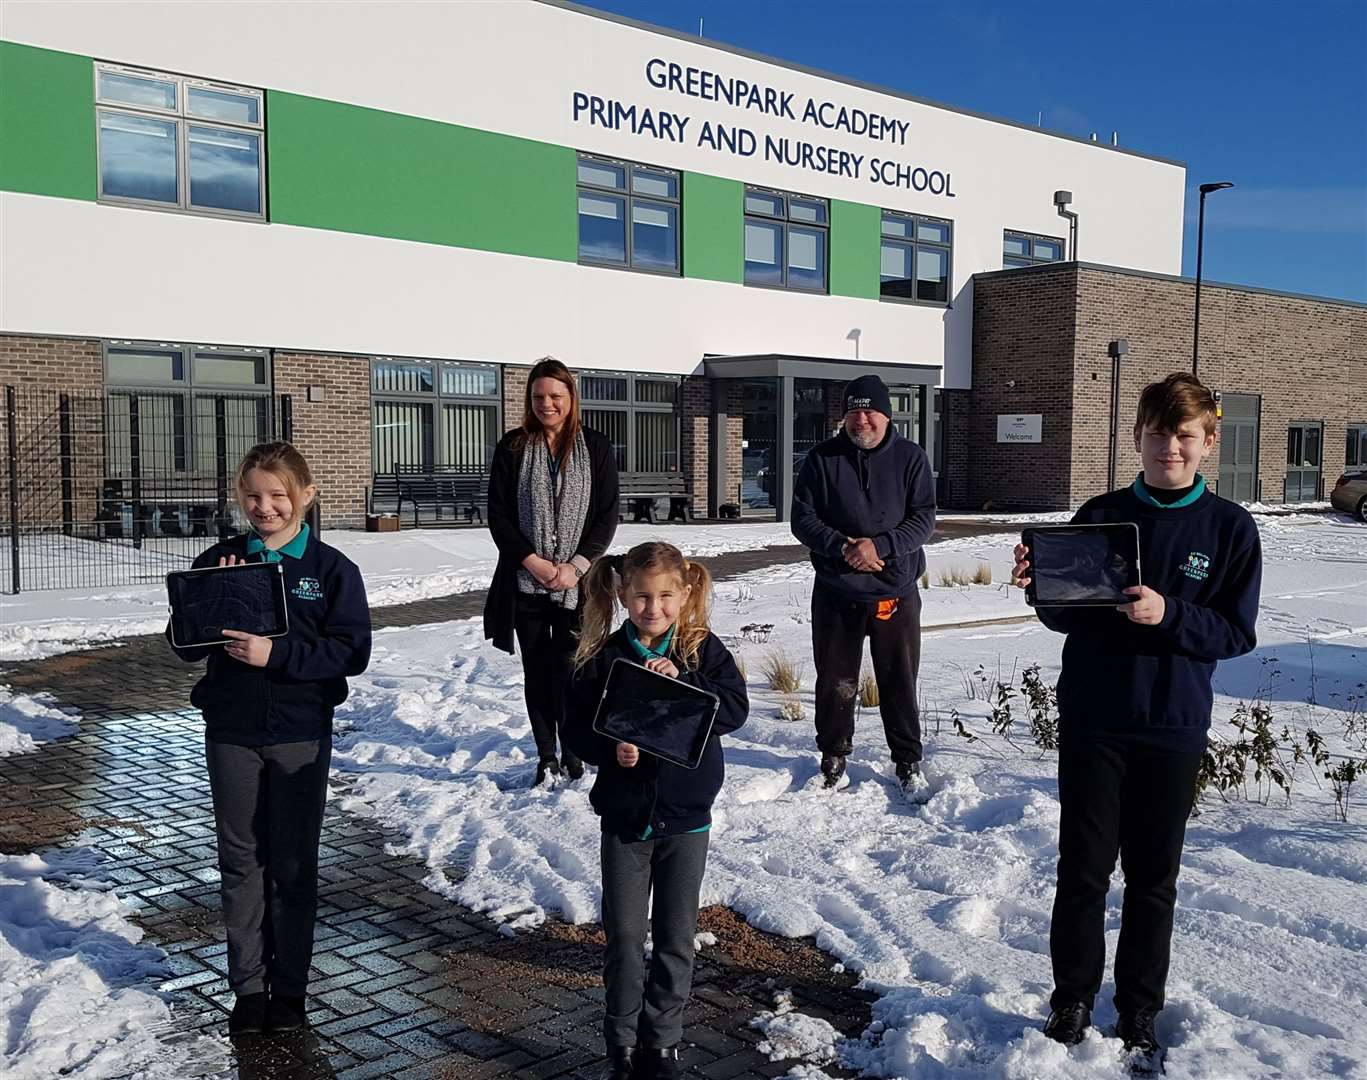 MLNF Greenpark Academy pupils with the i-pads, also Mr Michael Heaphy and head teacher Mrs JIll Graver (44362365)